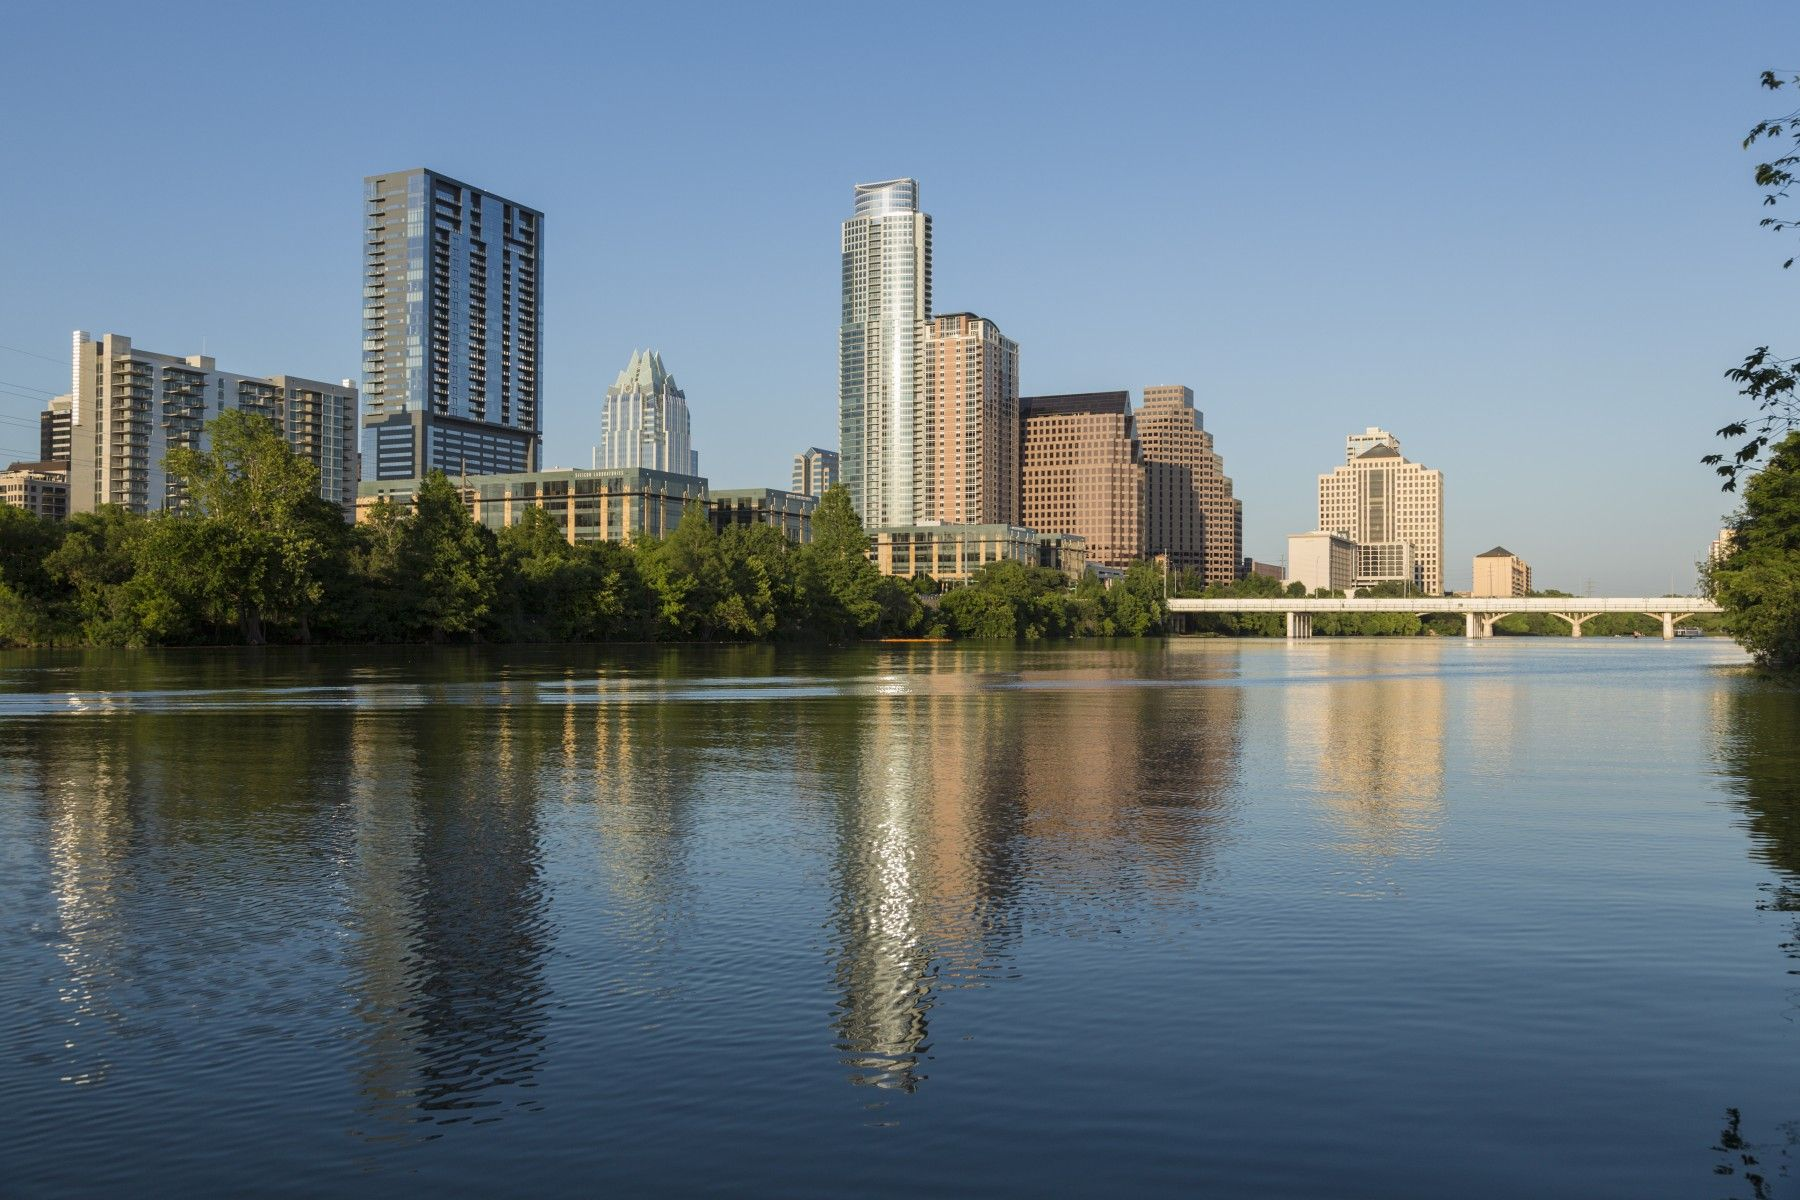 KLM adds Austin nonstop flights to schedule beginning May